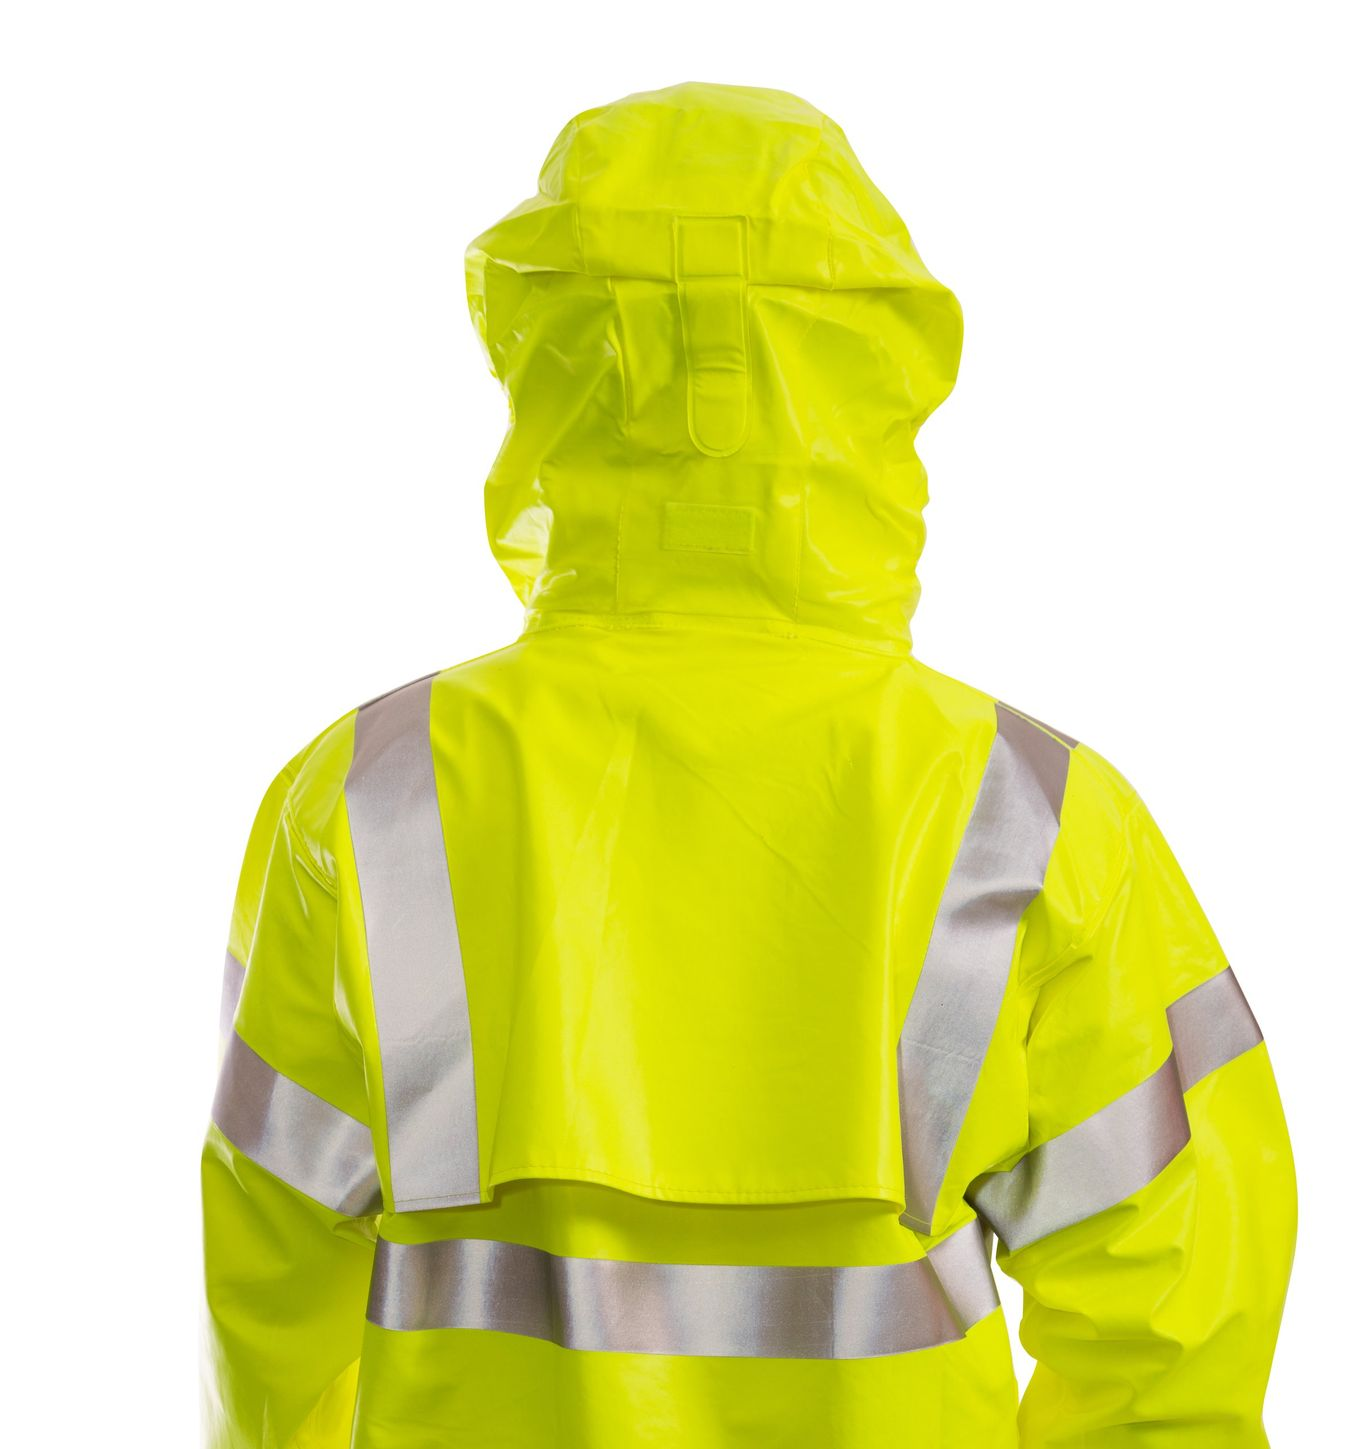 tingley-eclipse-arc-flash-and-fire-resistant-rain-jacket-pvc-on-nomex-chemical-resistant-class-3-hi-vis-fluorescent-yellow-green-example.jpg